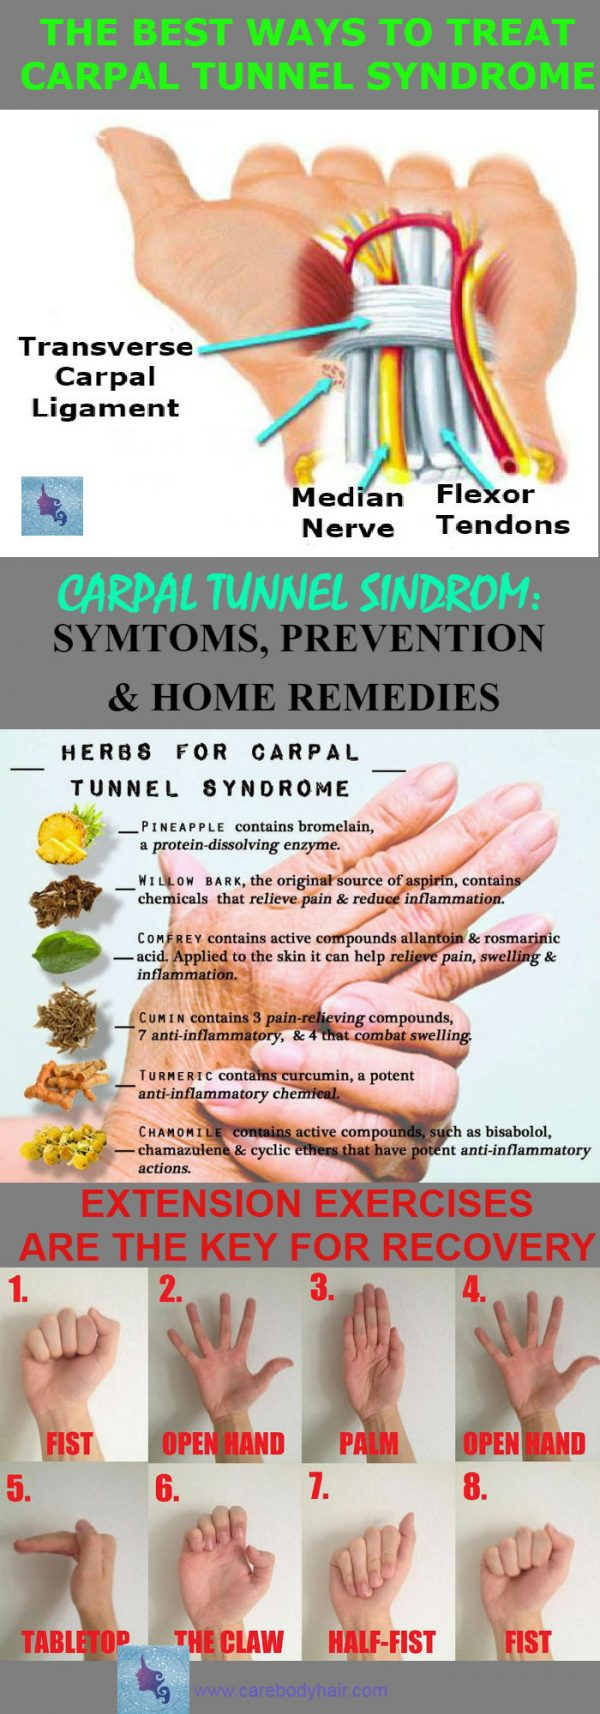 Best Ways to treat Carpal Tunnel Syndrome